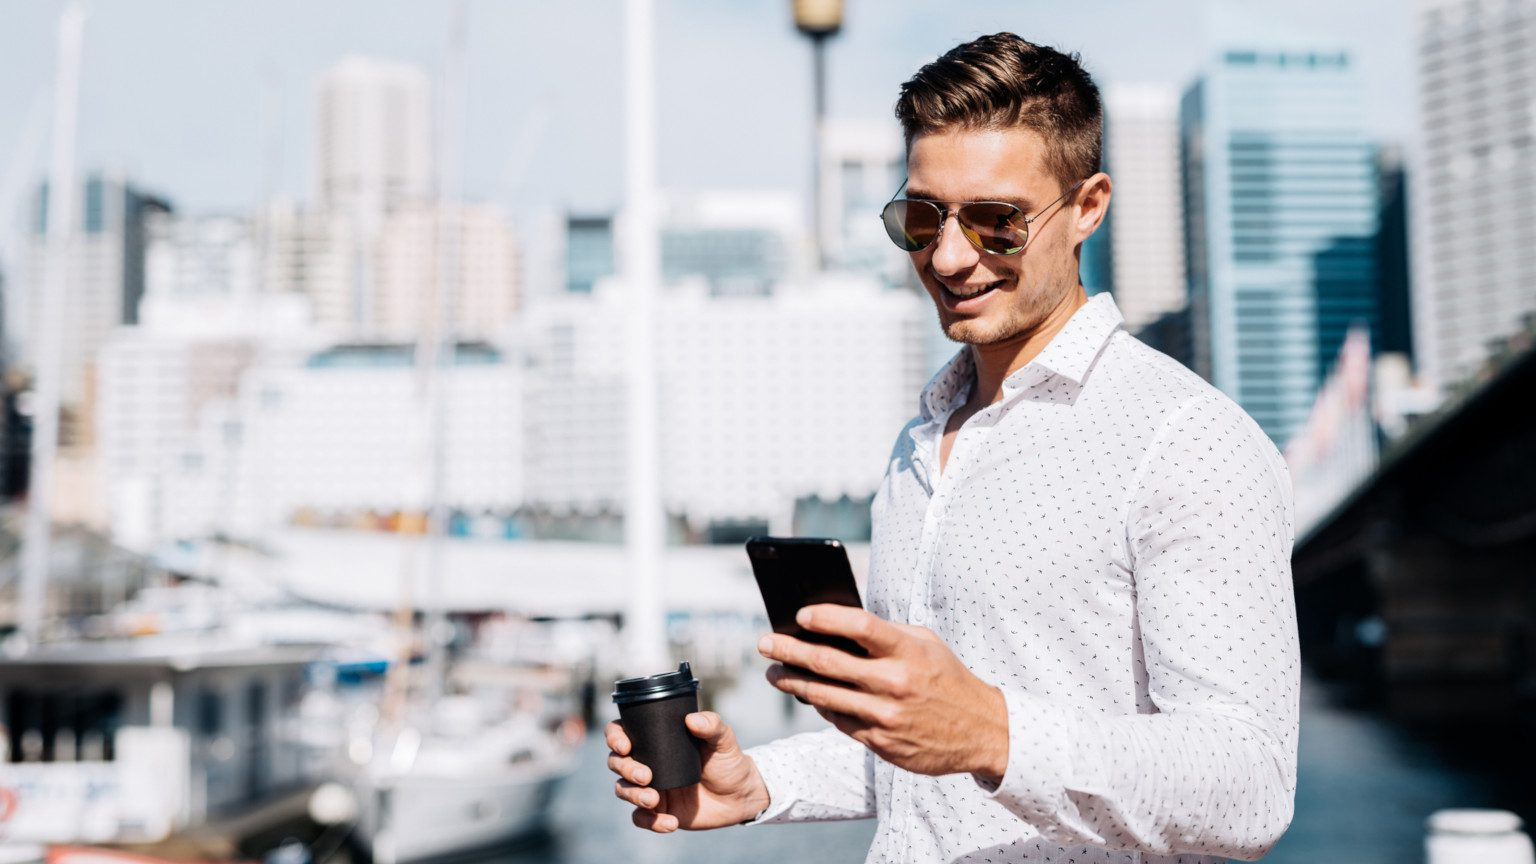 Young man with sunglasses standing outside in the sun with his phone and a coffee